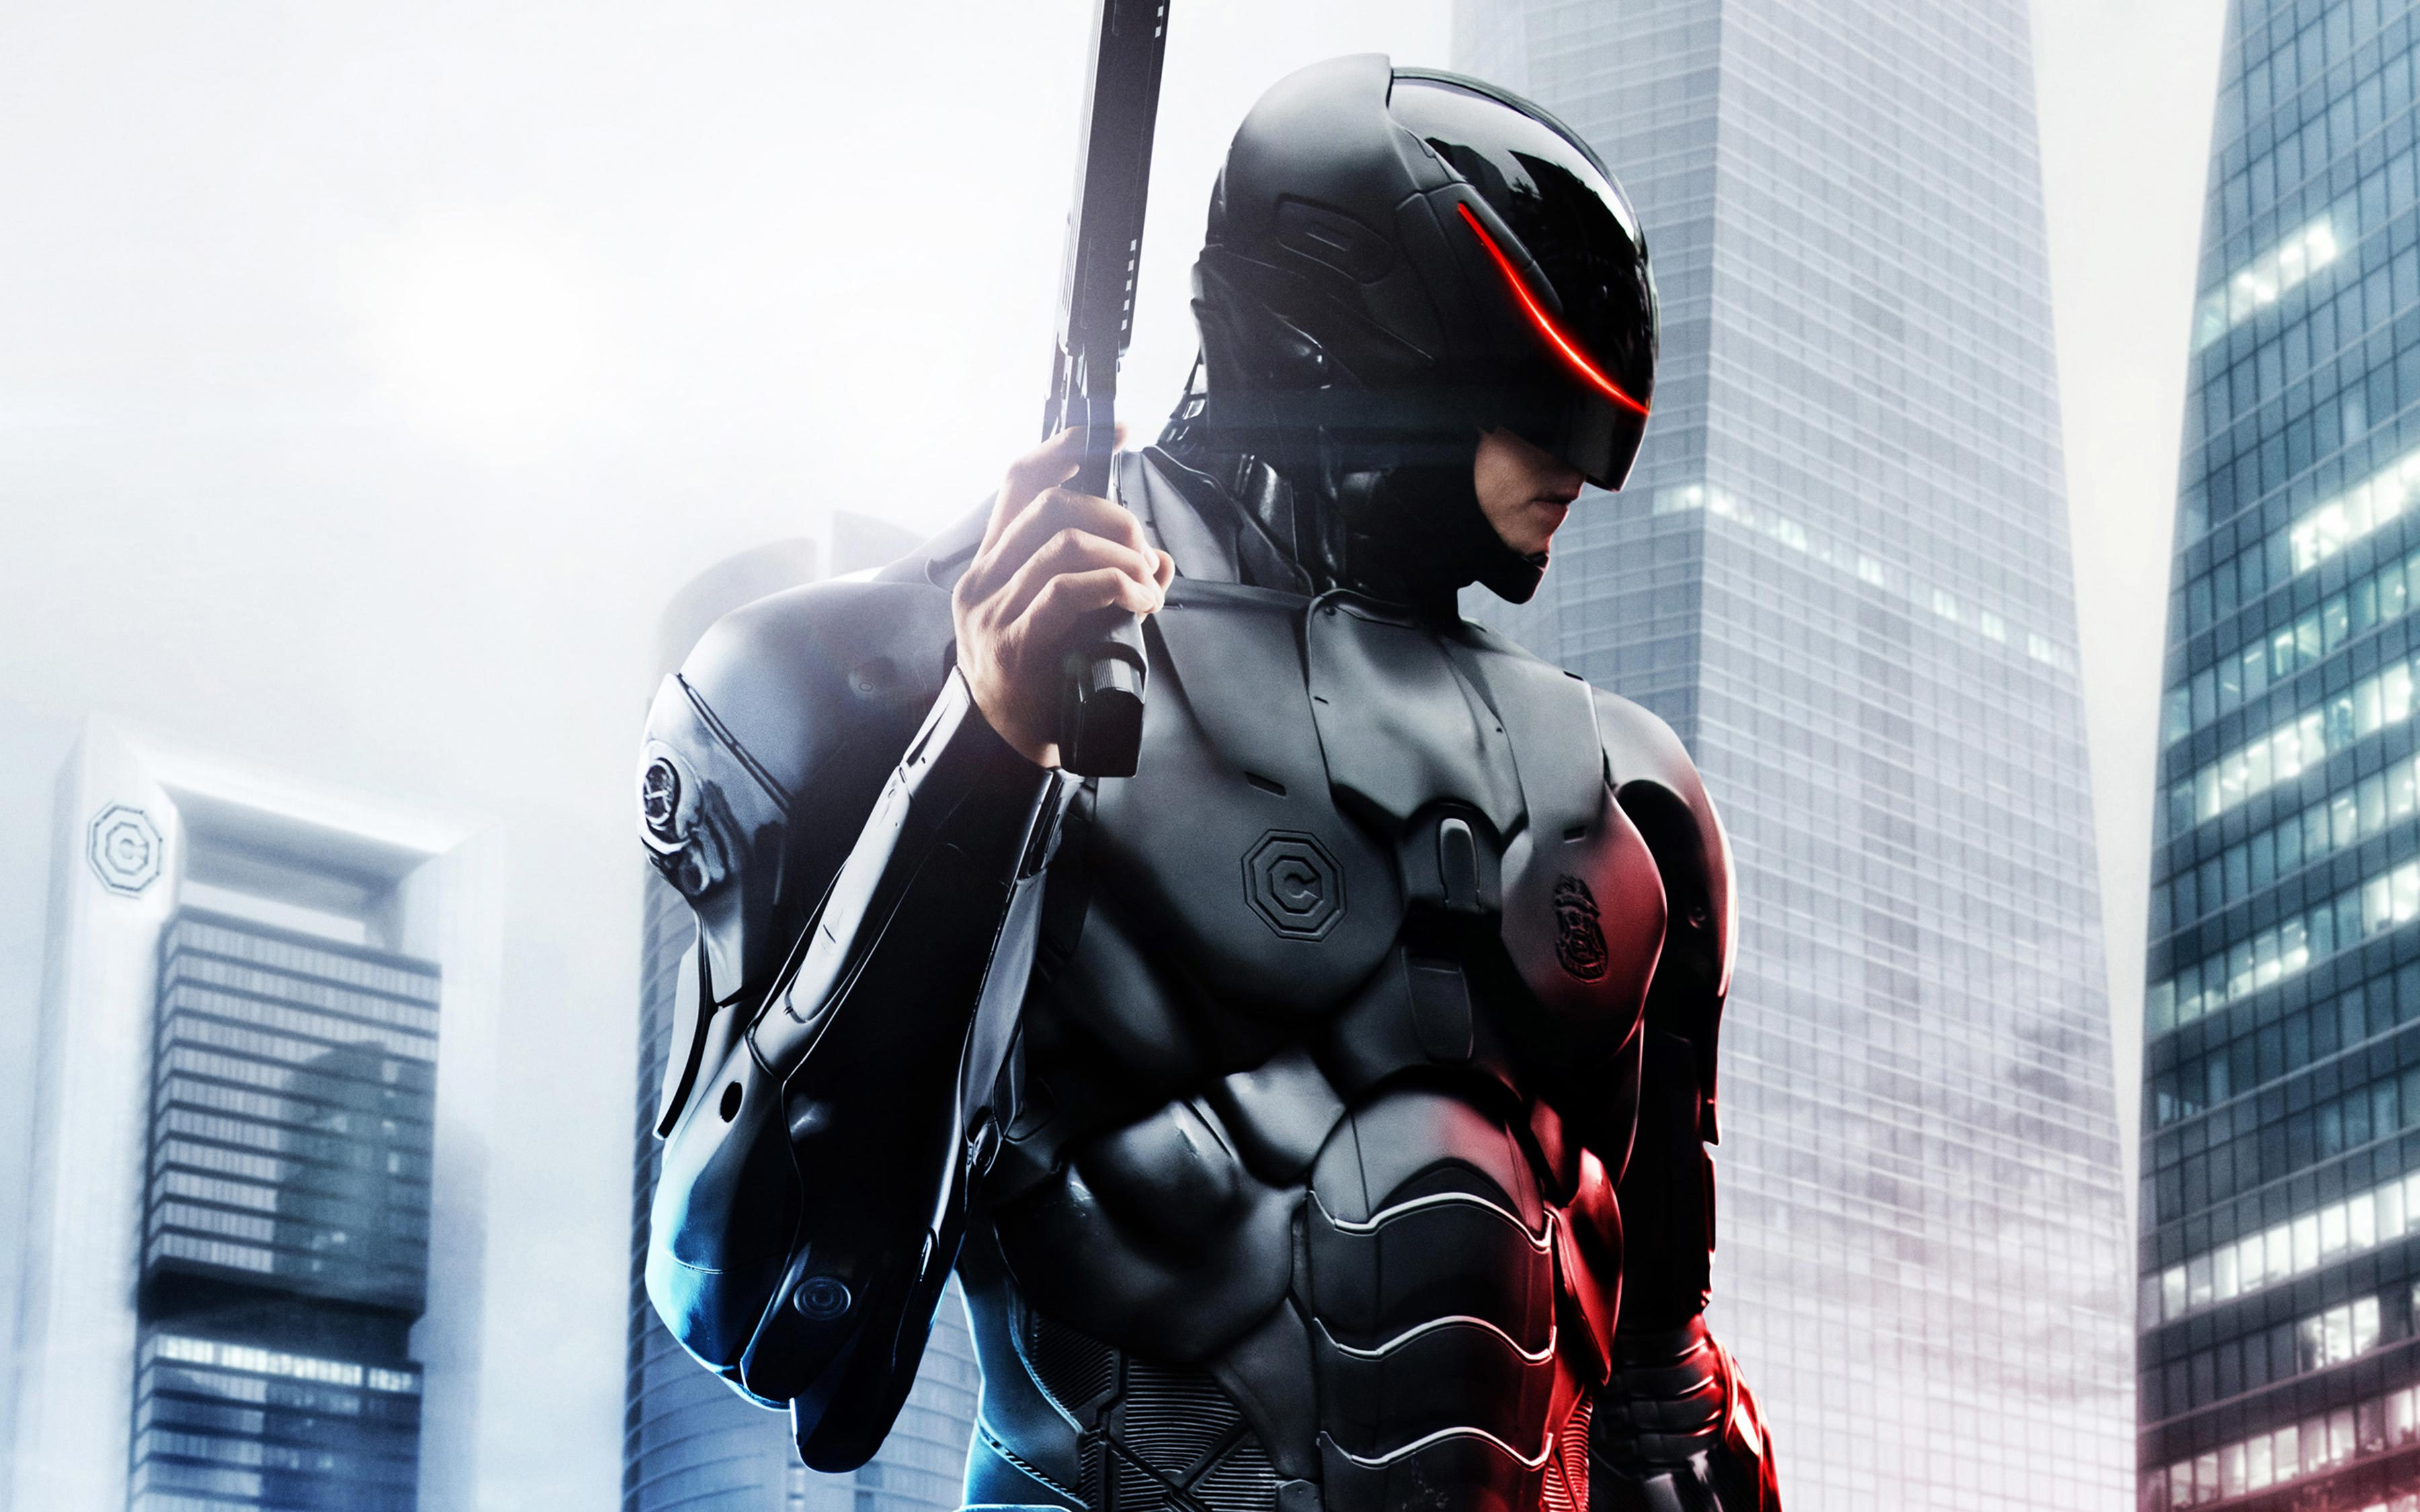 RoboCop 2014 widescreen wallpapers